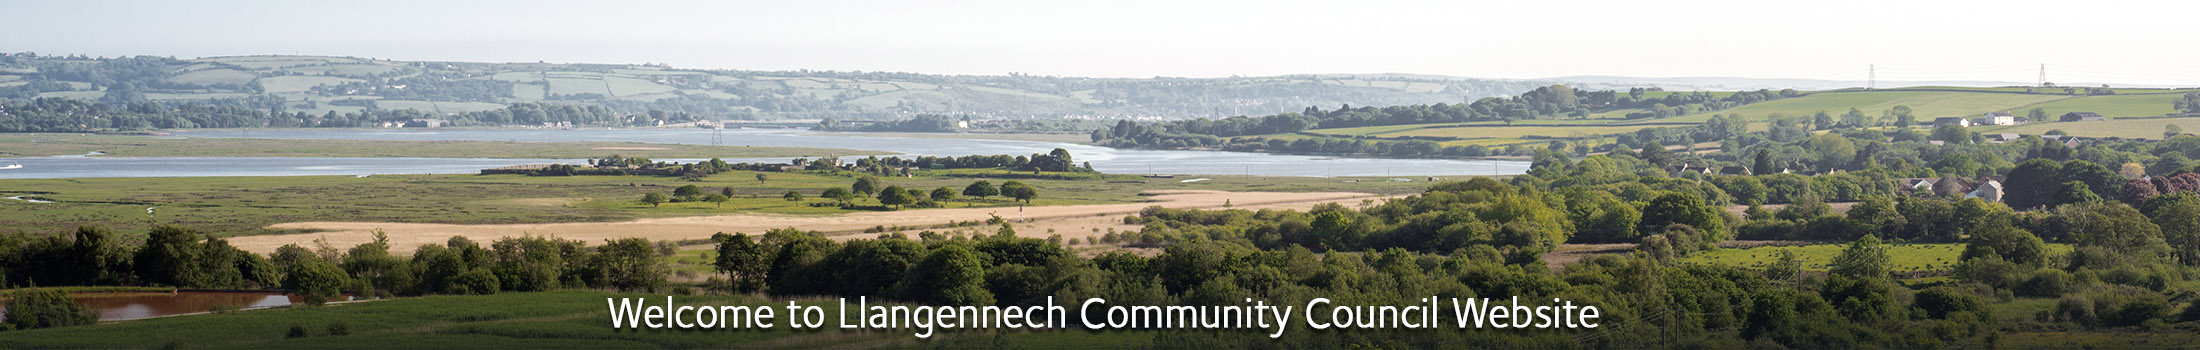 Header Image for Llangennech Community Council